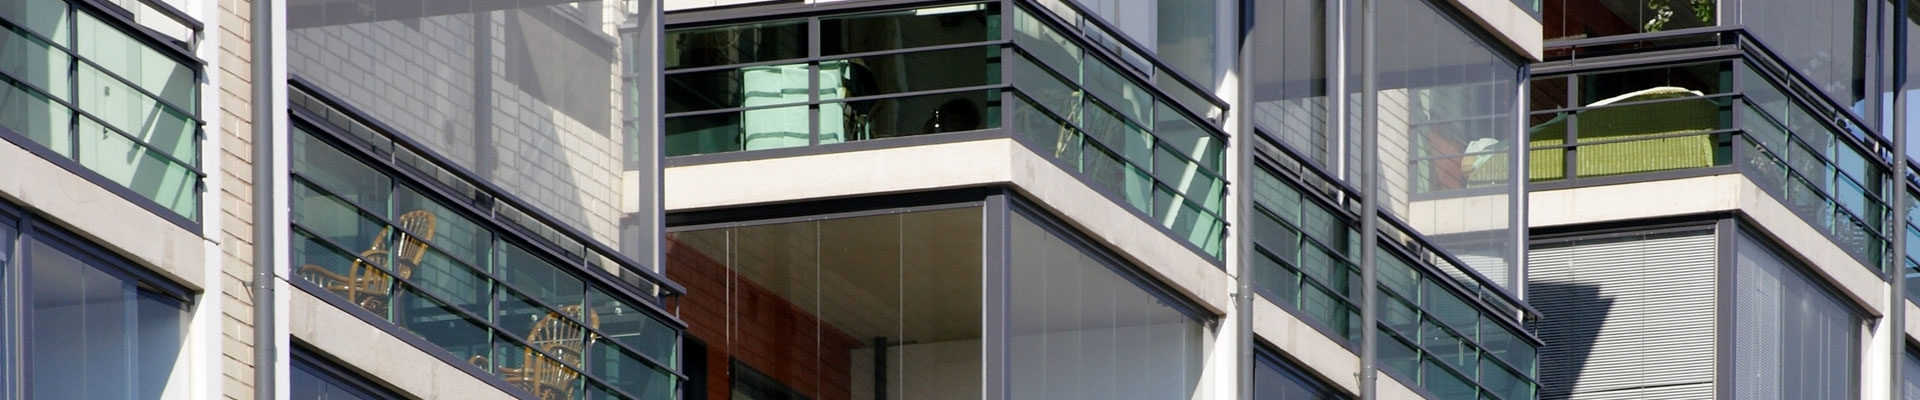 Aluminum facades contaminate and fade quickly  clean and protect your aluminum facades